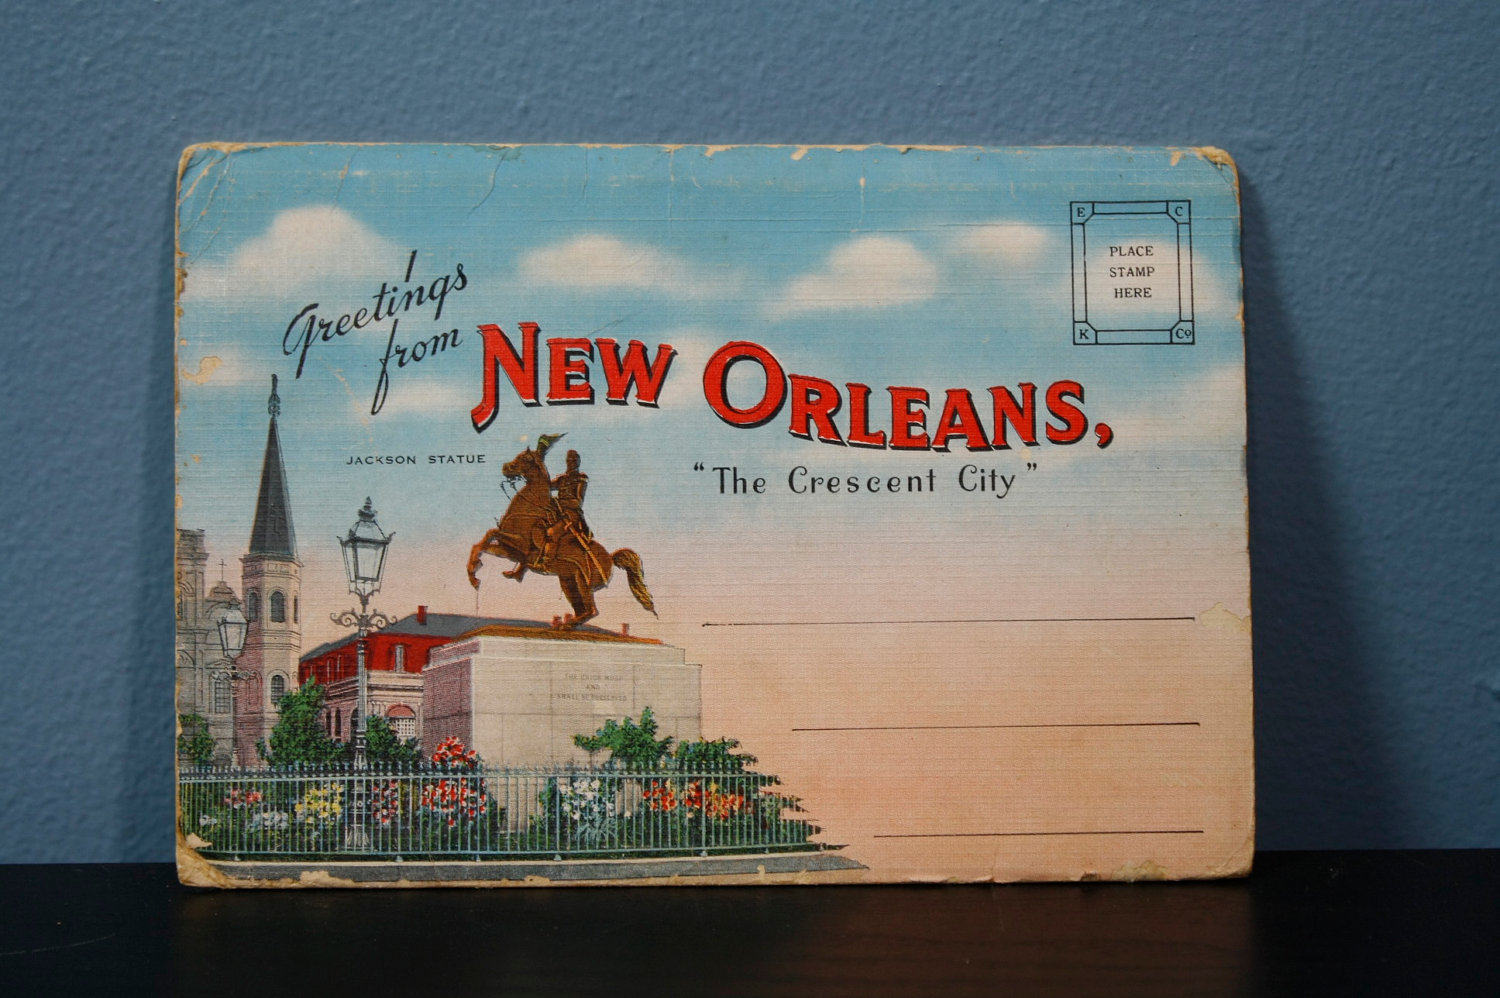 Slippin southern greetings from new orleans greetings from new orleans m4hsunfo